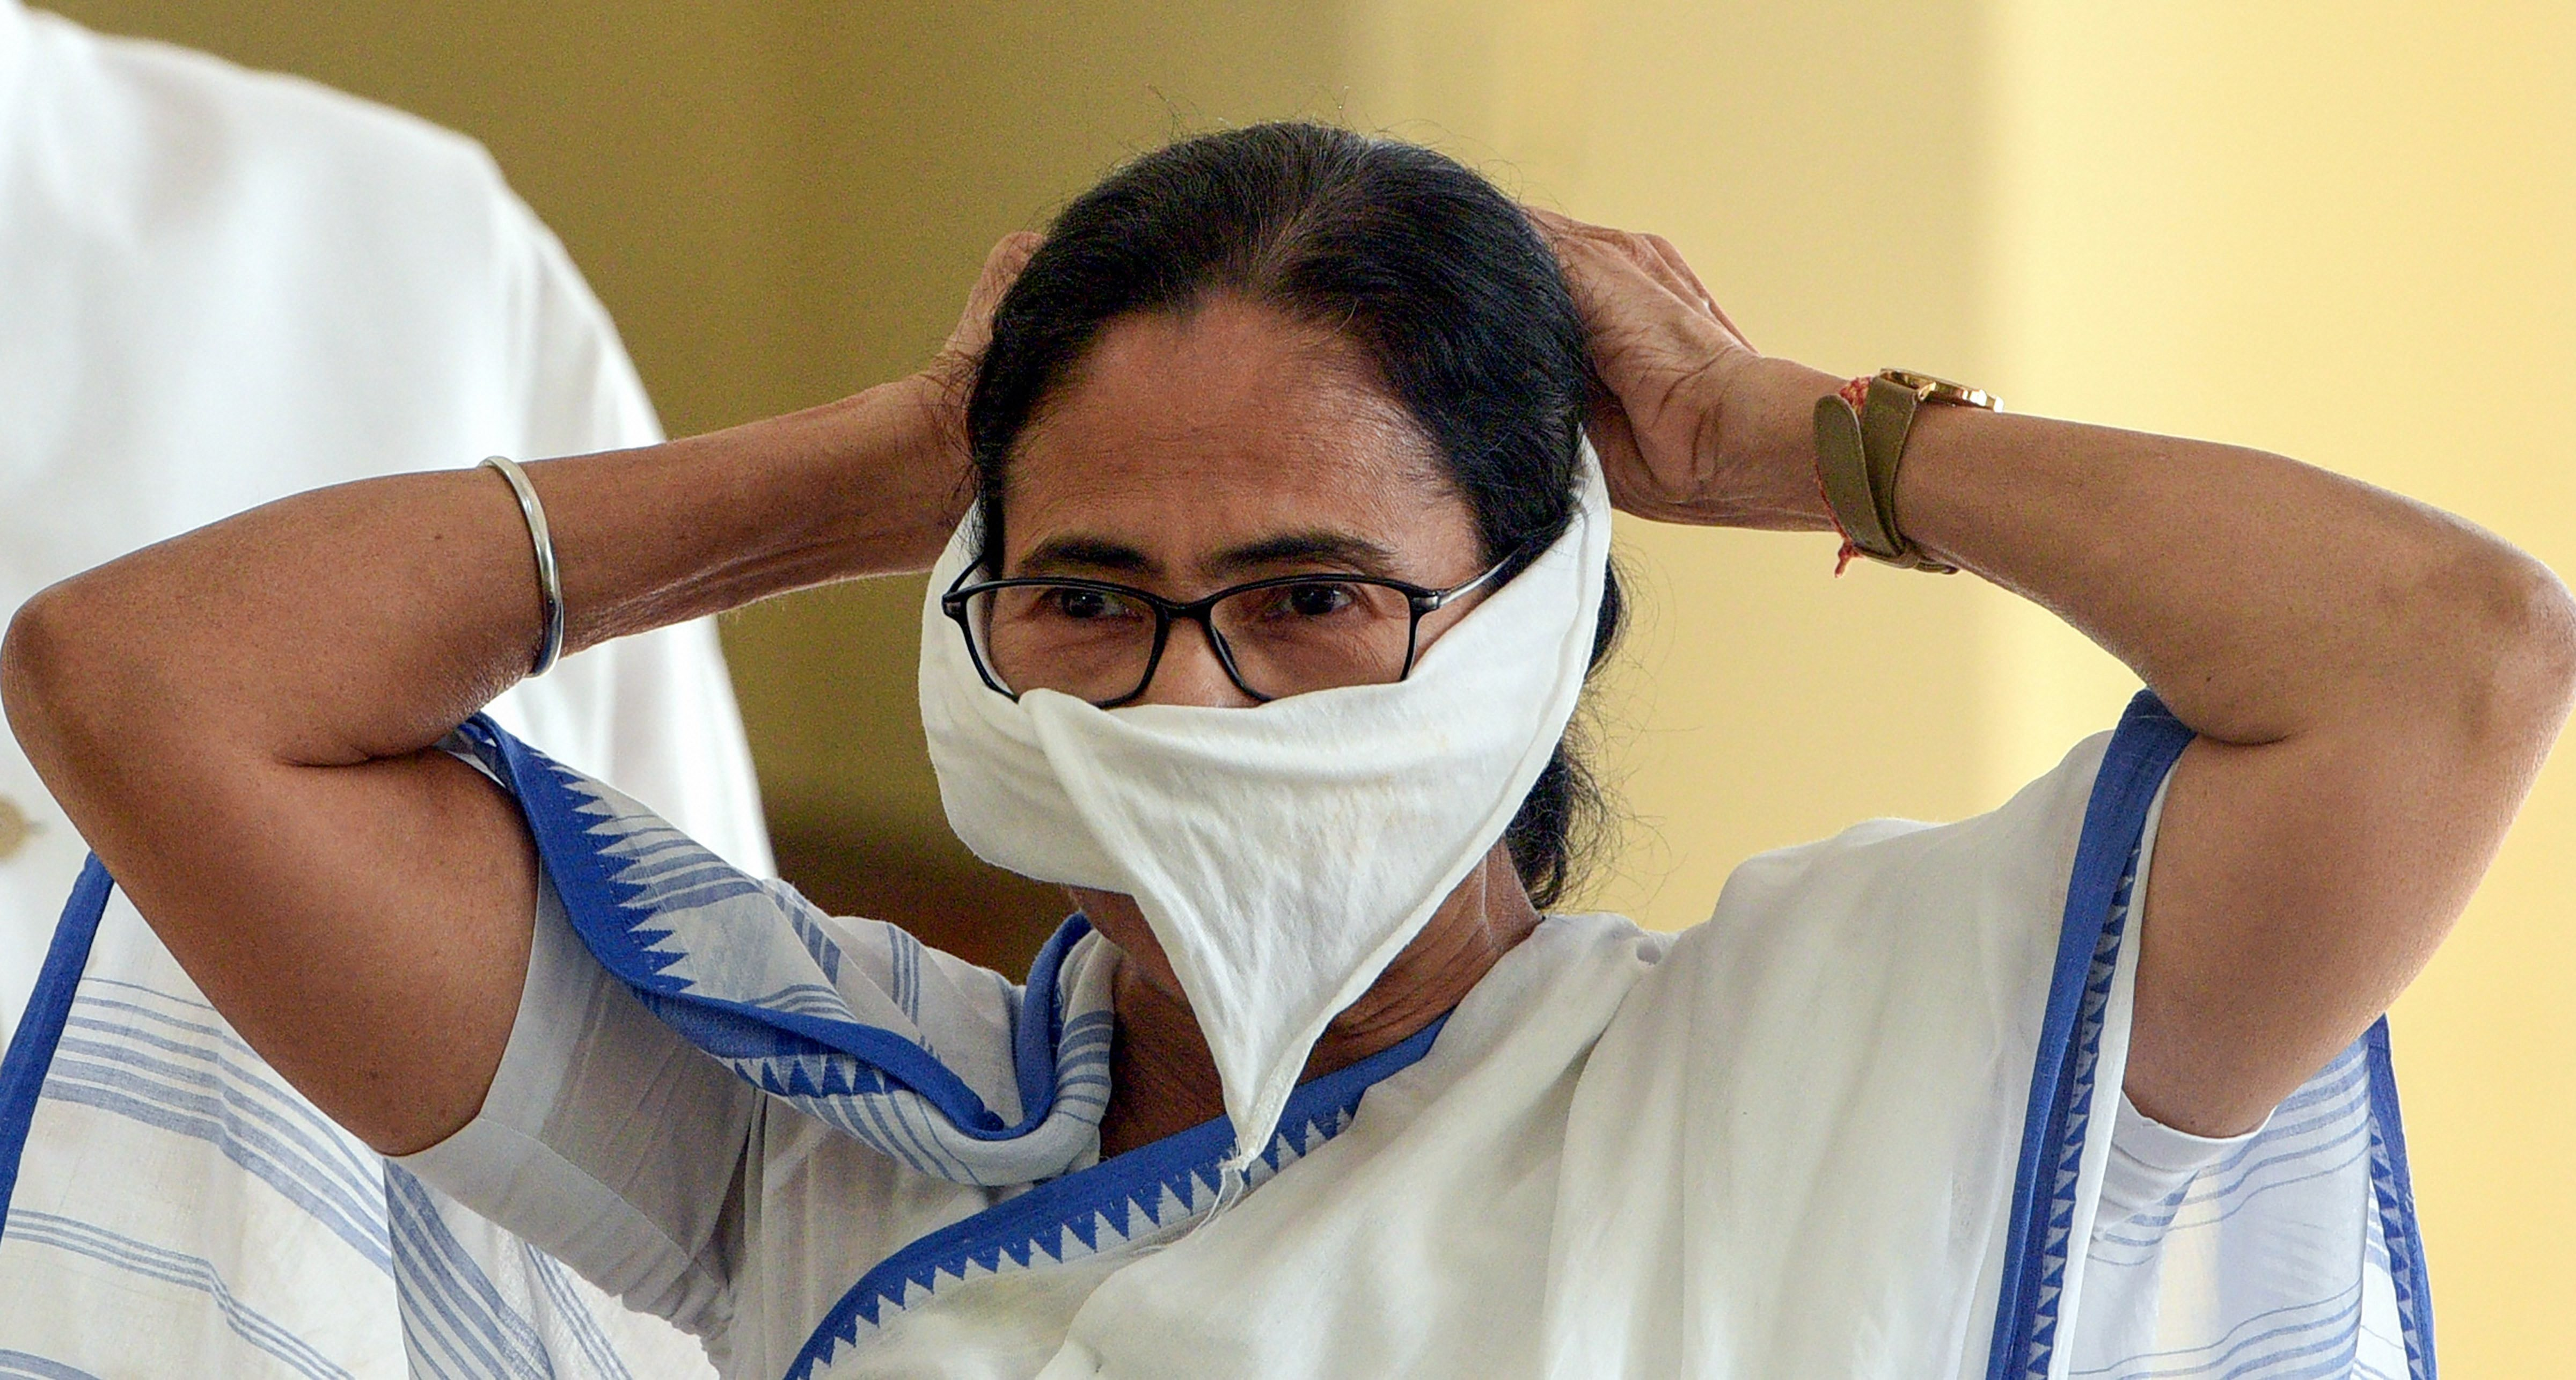 On Wednesday, chief minister Mamata Banerjee  mentioned iron and steel units, jute mills, tea gardens and construction as some of the sectors that may be given further relaxation.